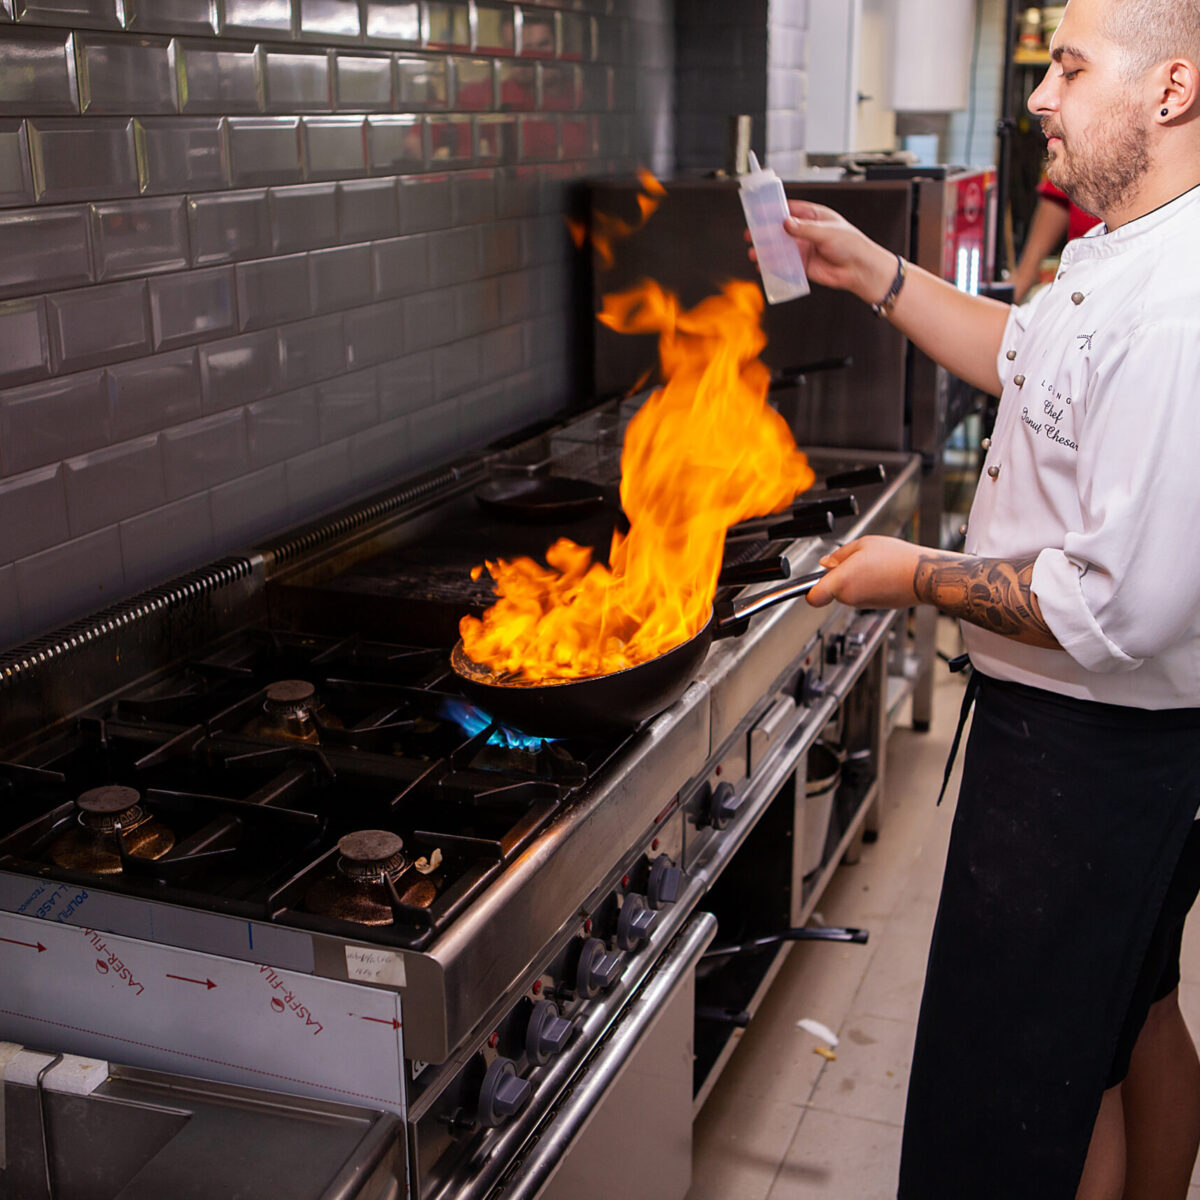 Male cook making flambe seafood at stove in restaurant kitchen. Tasty food